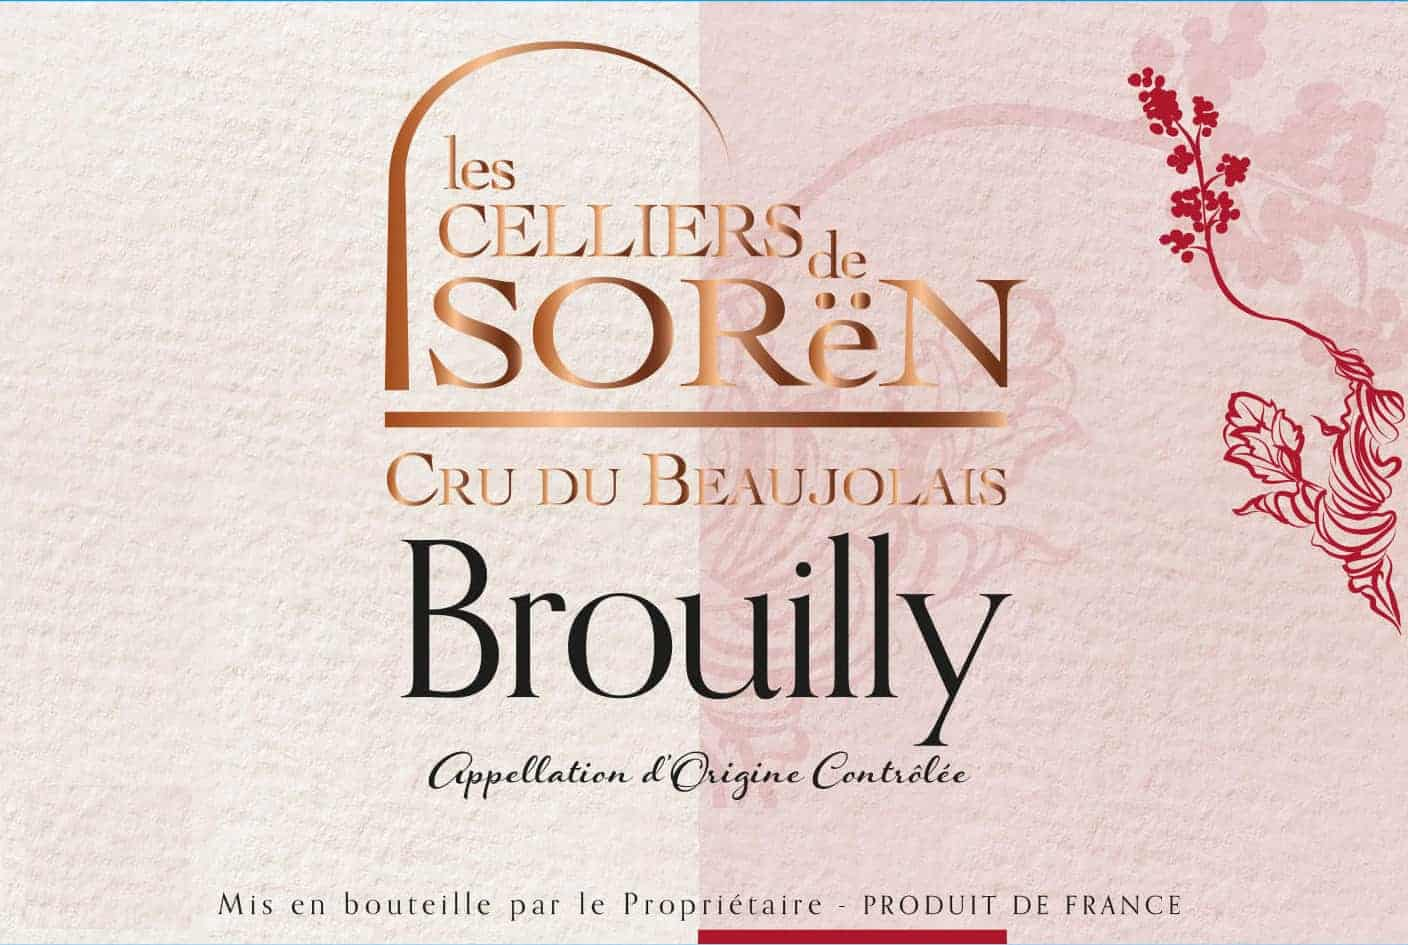 Front label of Les Celliers de Sorën Brouilly wine from Beaujolais